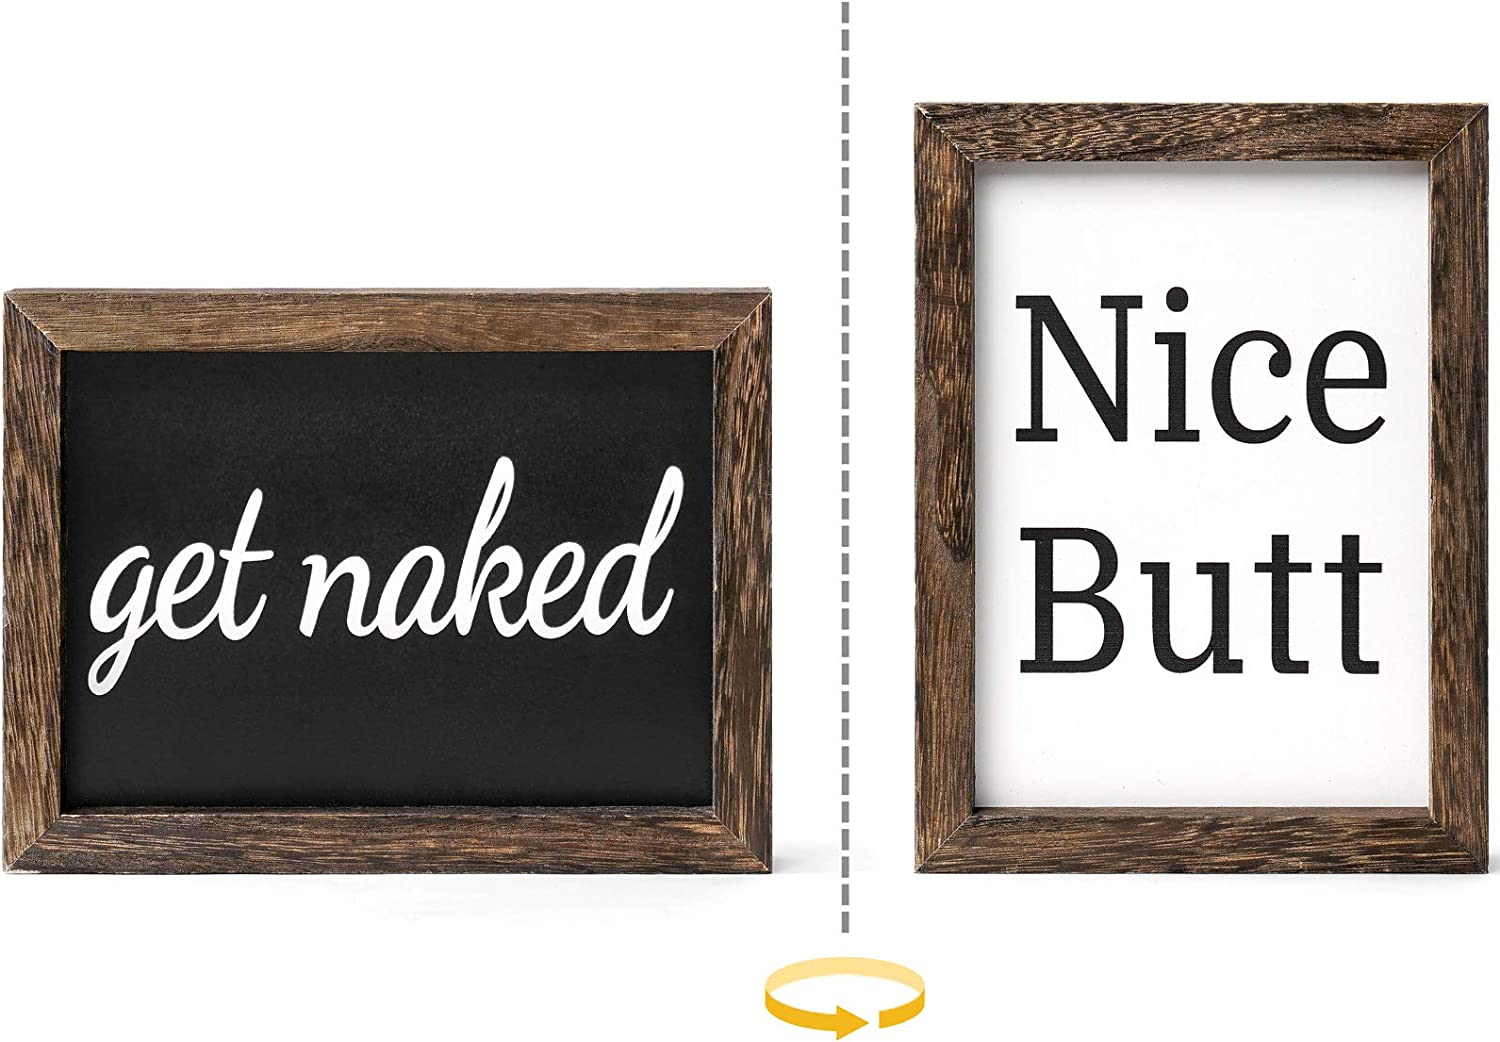 Dahey 1 Pack OFFicial mail order Farmhouse Bathroom Wall Sides Decor 2 Funny Si Wood Max 67% OFF